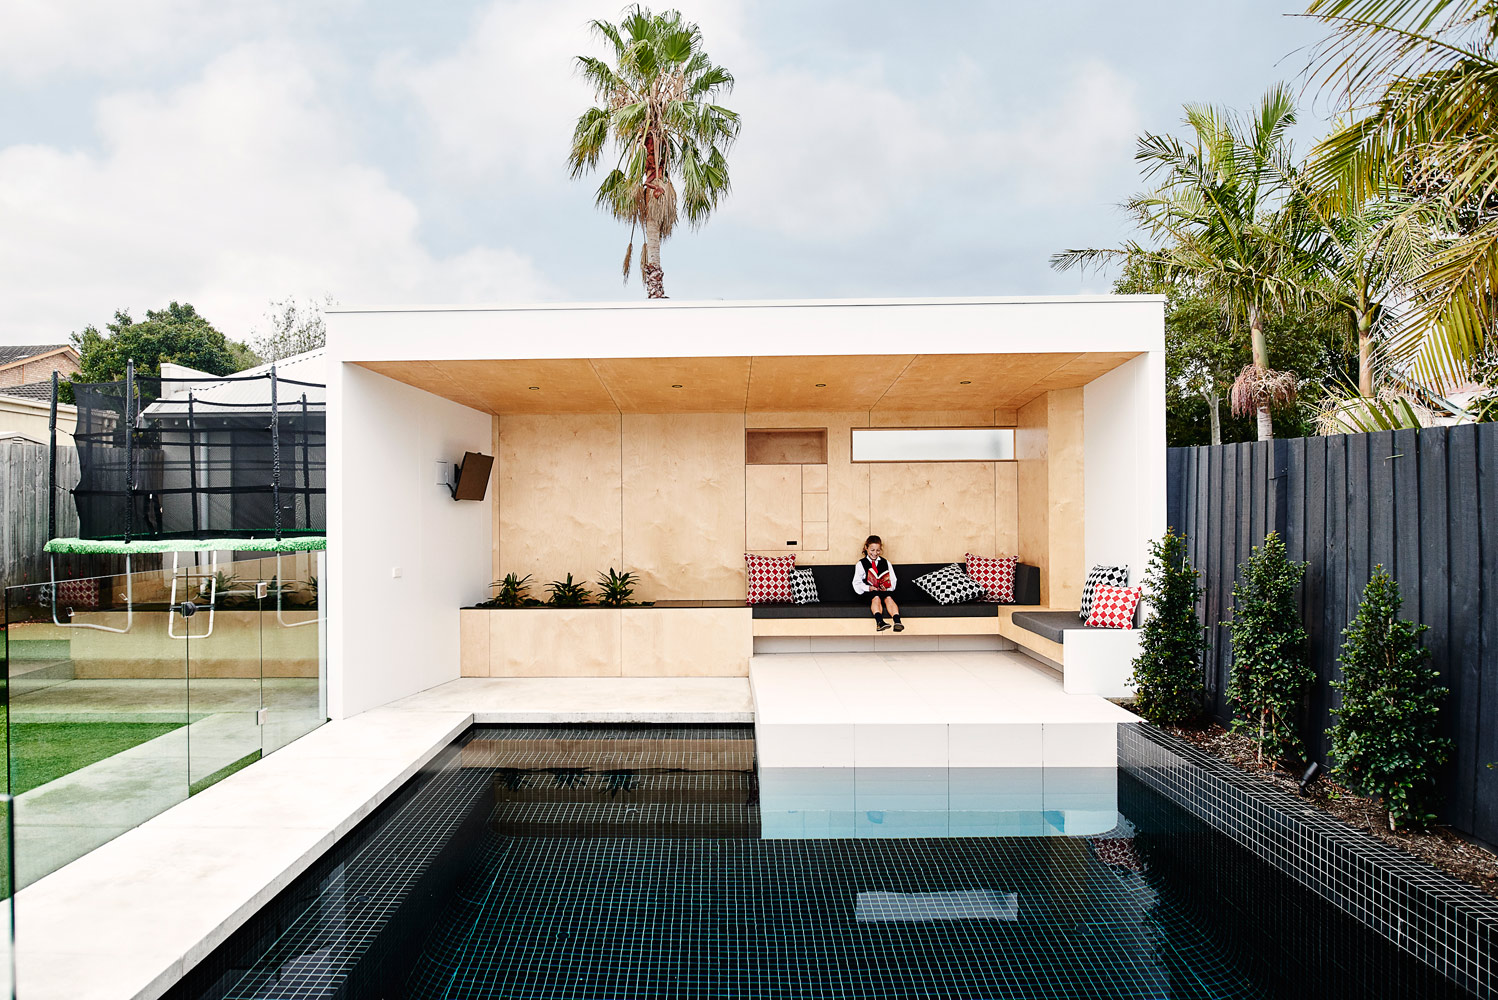 Brighton Bunker - Local Exterior Timber Seating - Dan Gayfer Design - Architecture Archive